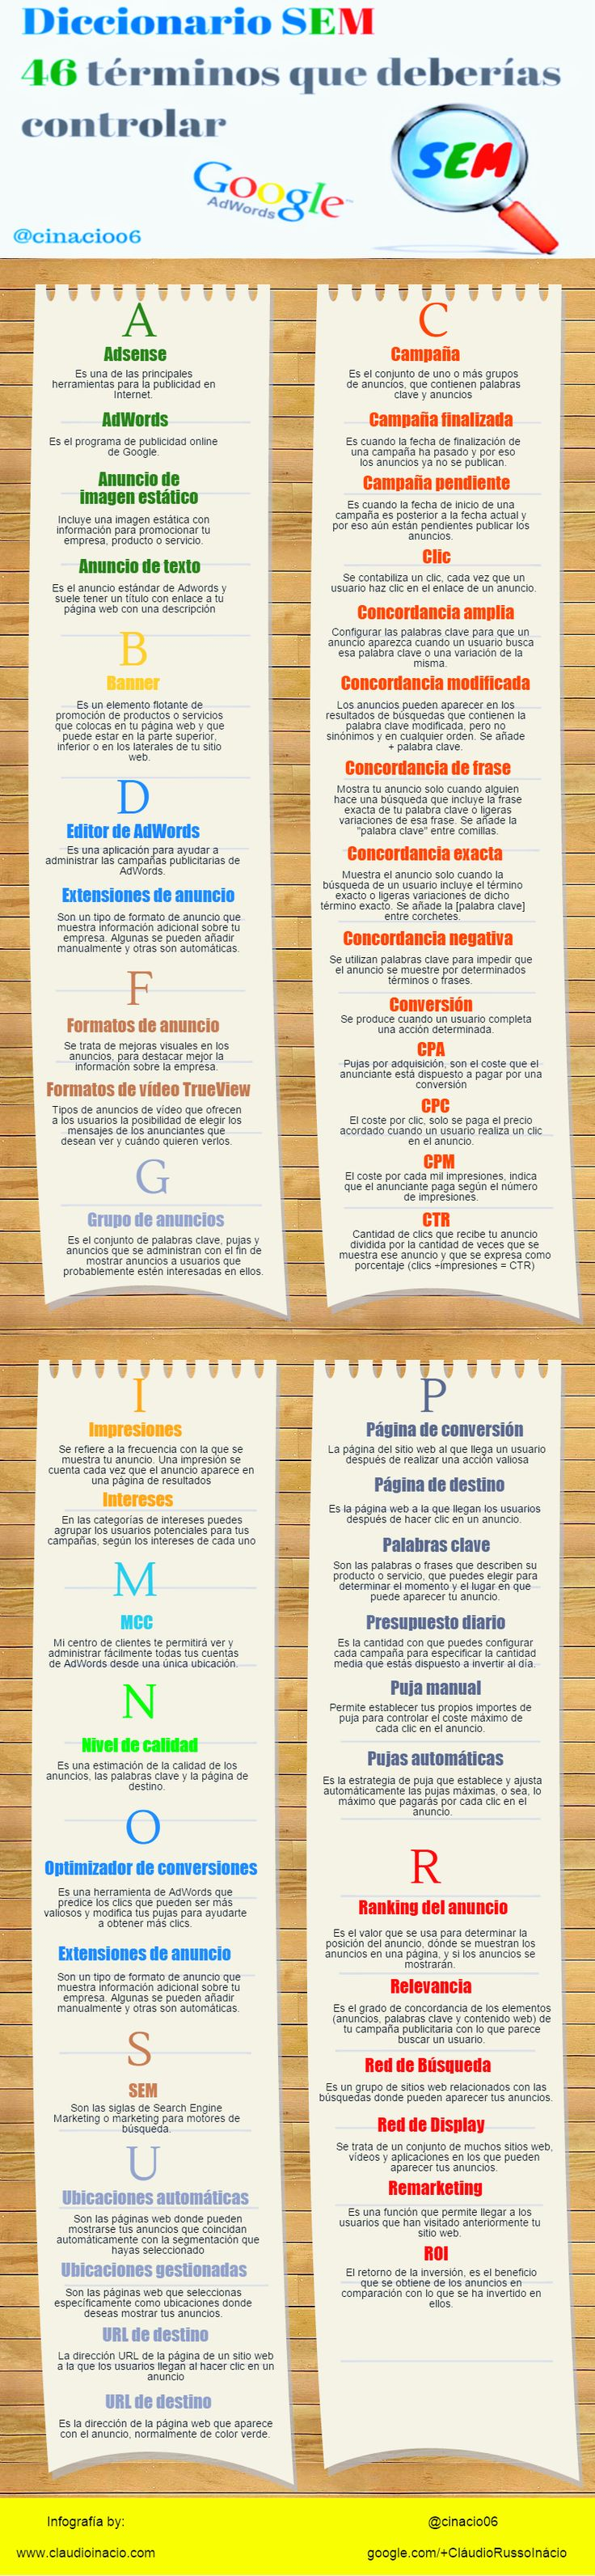 Diccionario SEM: 46 términos que debes conocer #infografia #infographic #marketing